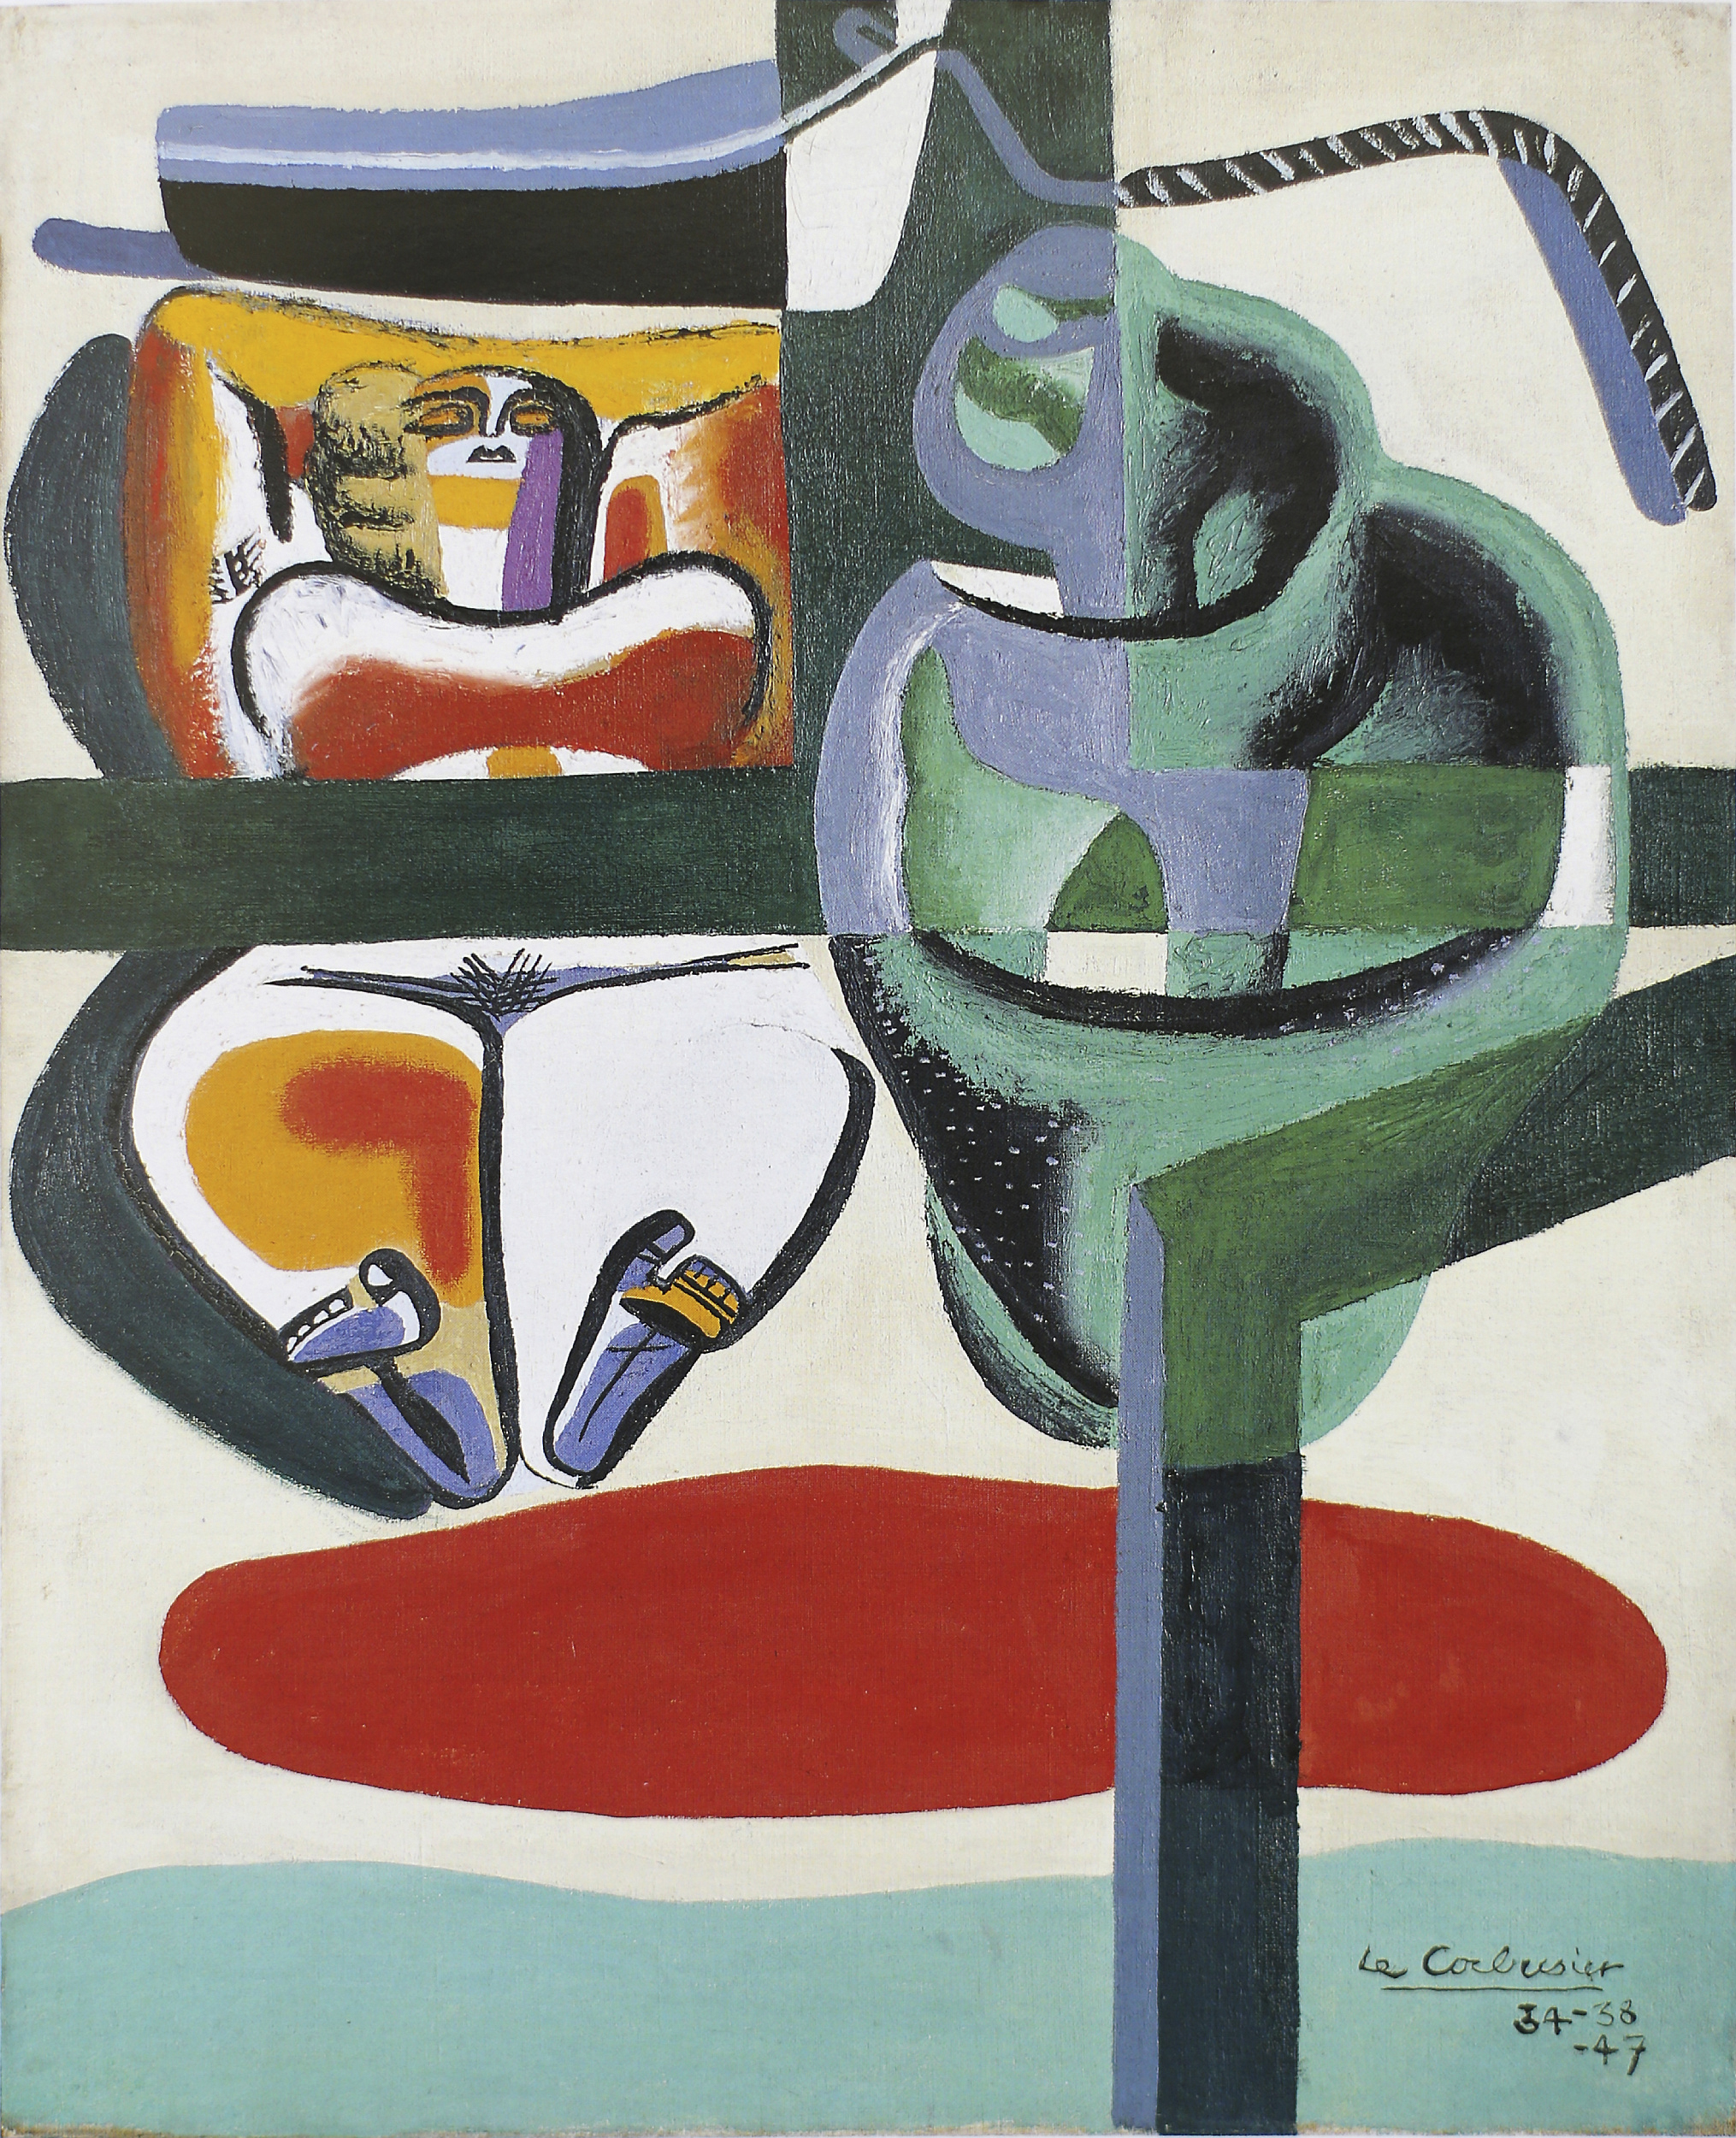 Le Corbusier, Baigneuse, barque et coquillage.  The Foundation Le Corbusier © FLCADGAP